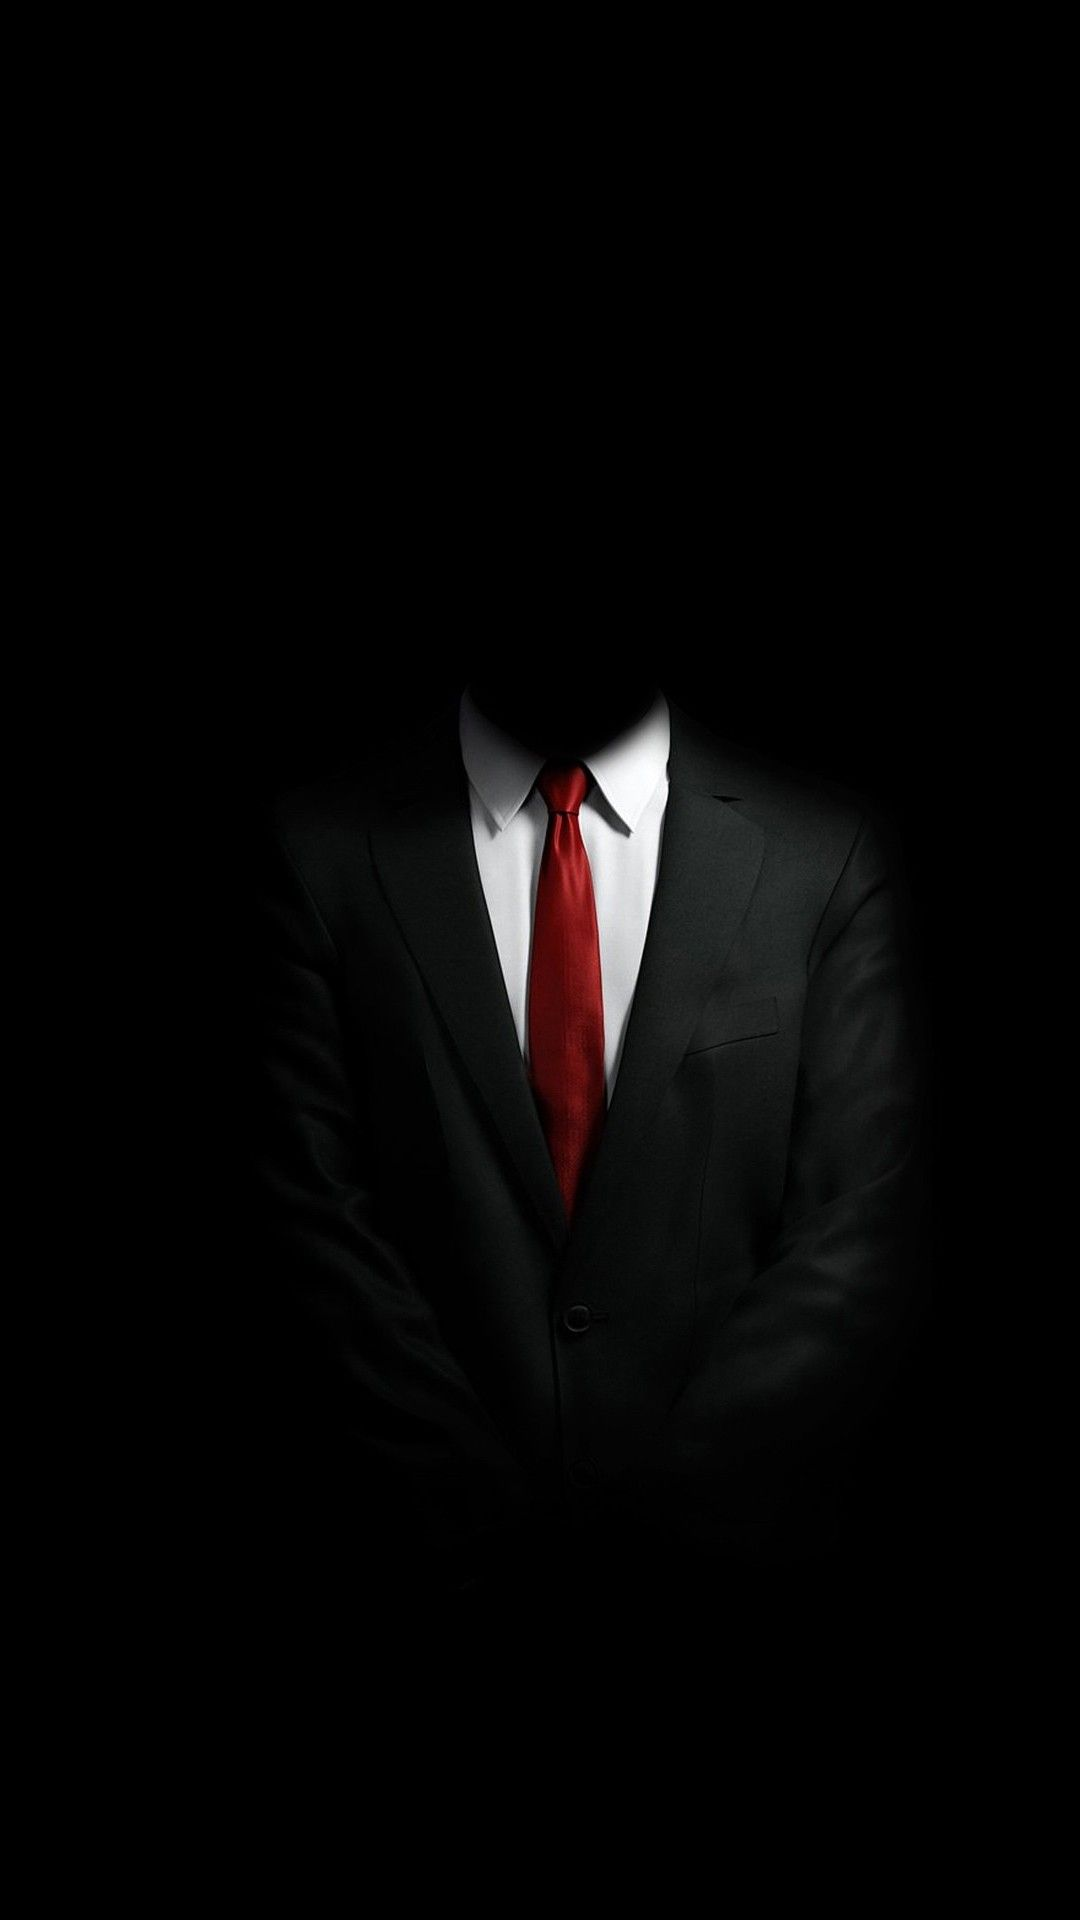 Mystery Man In Suit Smartphone Wallpaper And Lockscreen Hd